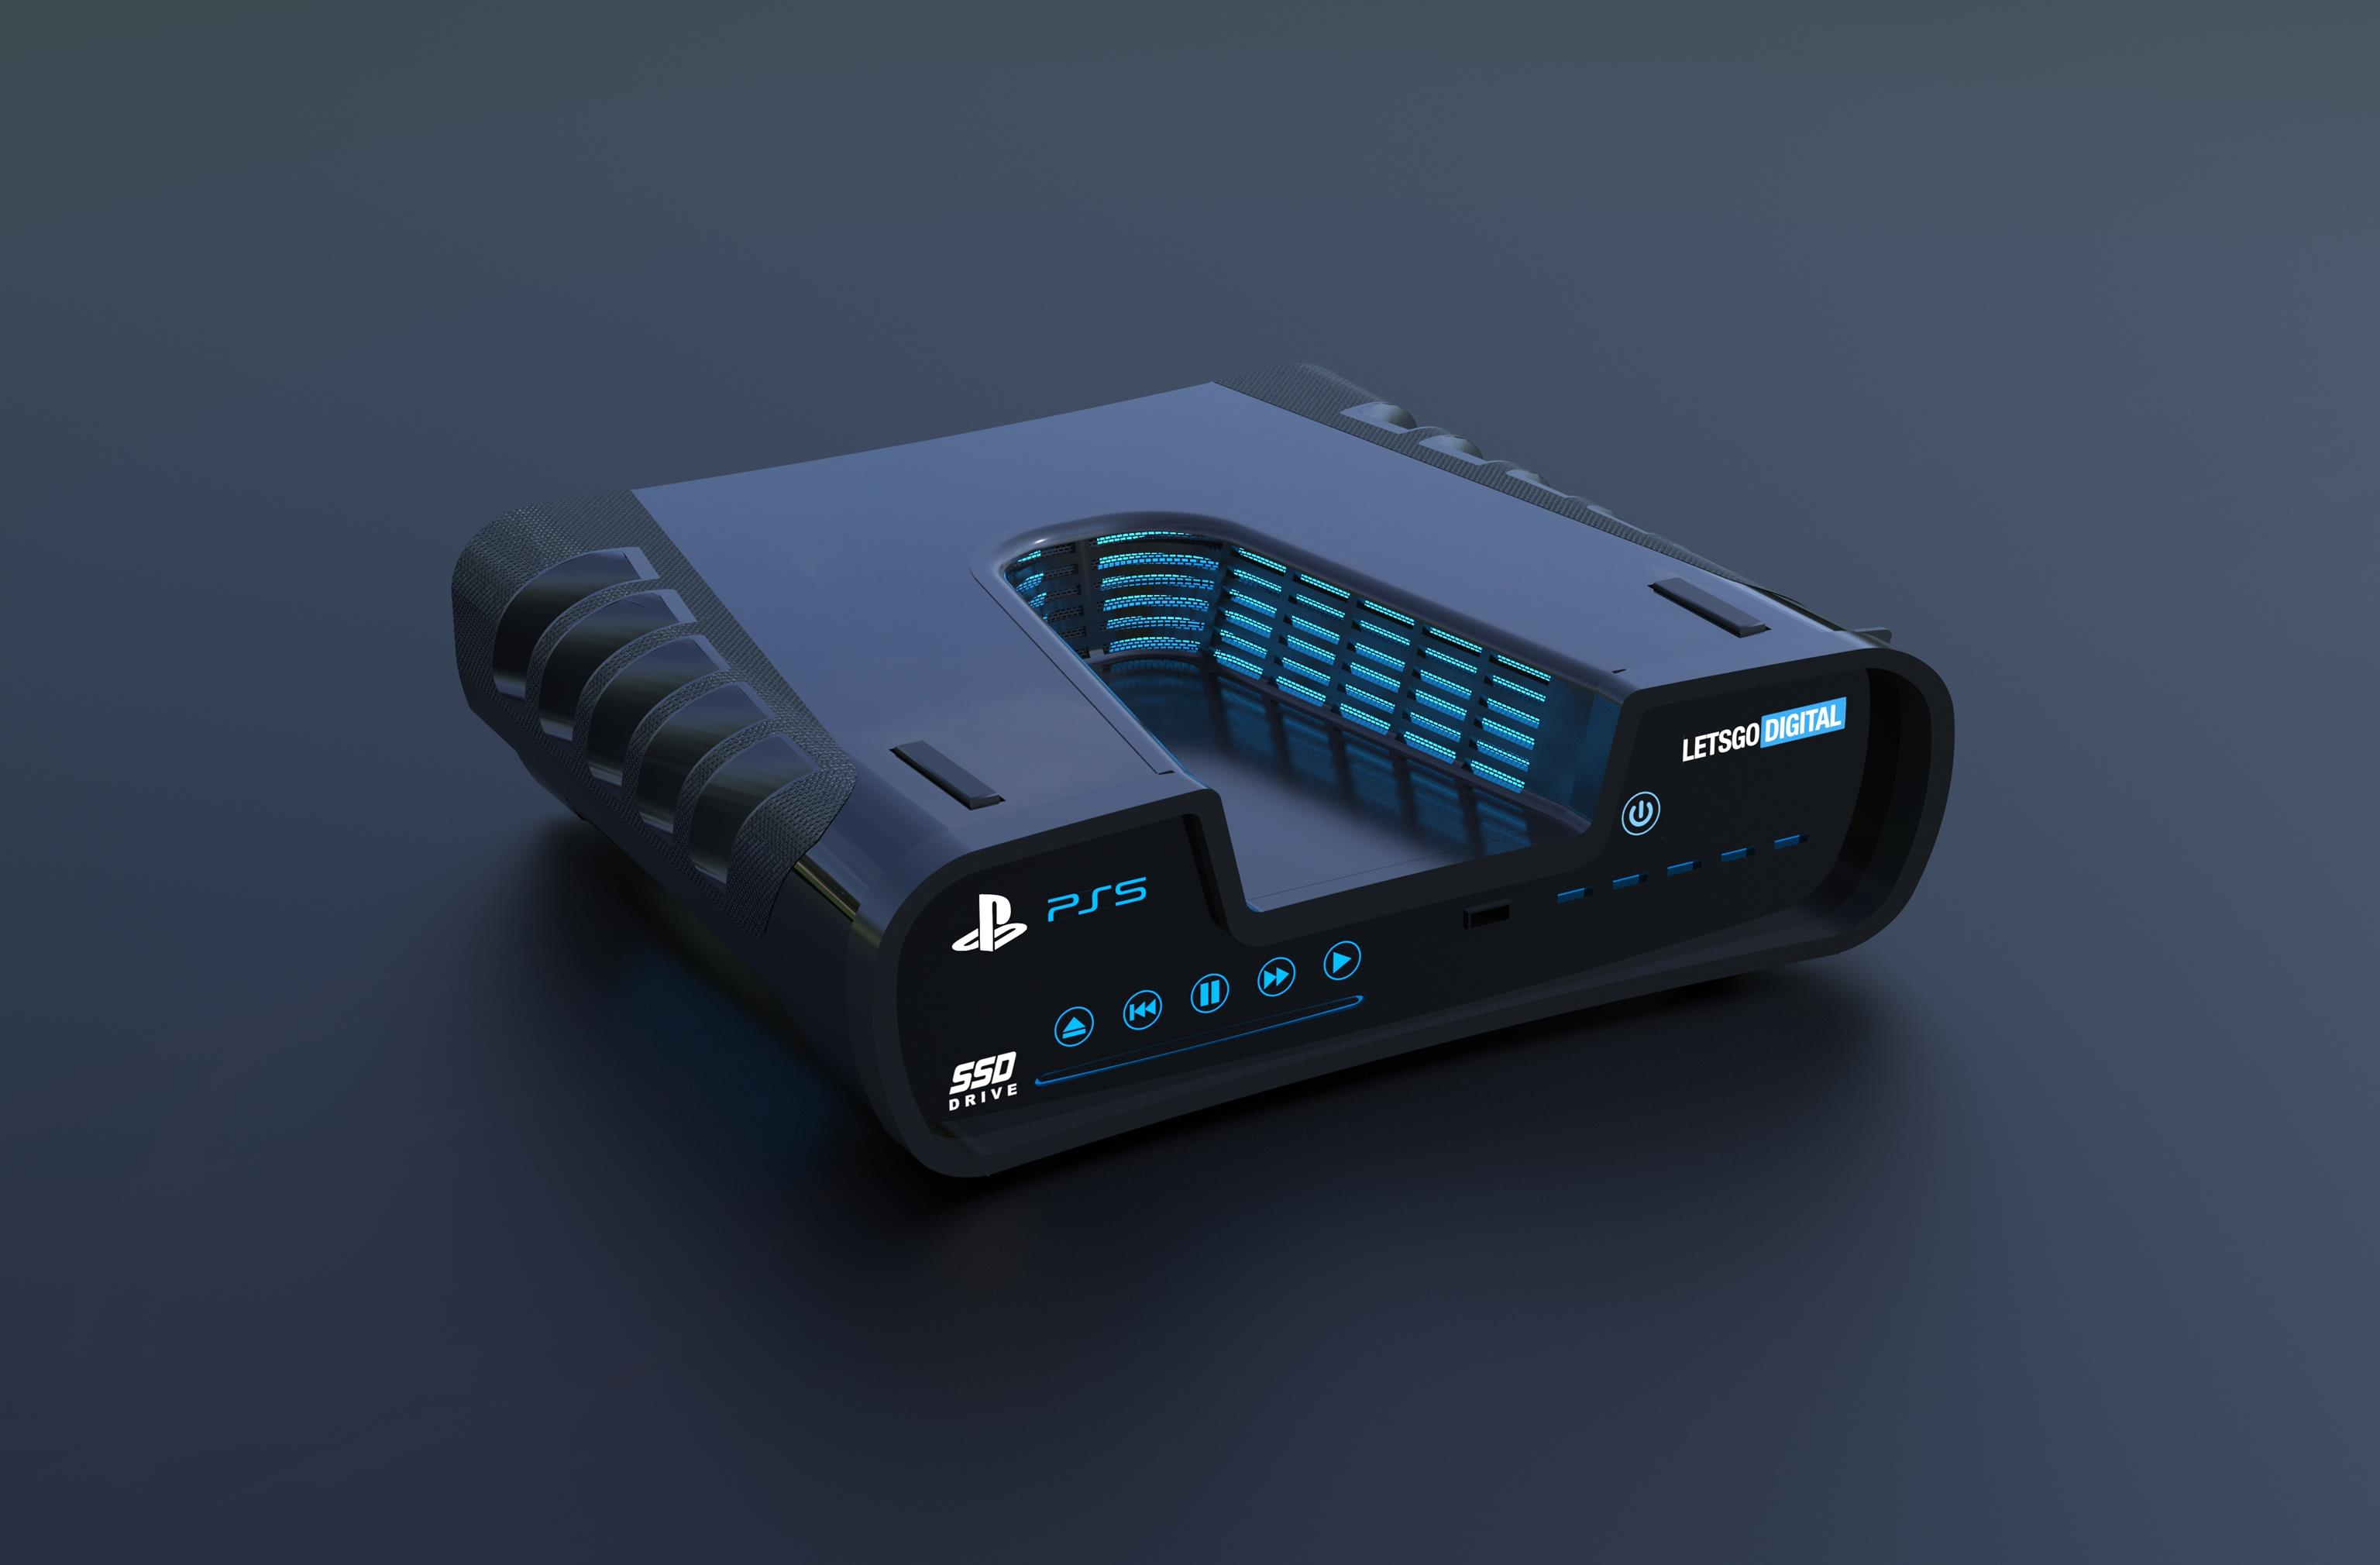 Remember that potential PS5 development kit image? Someone made a 3D render of it